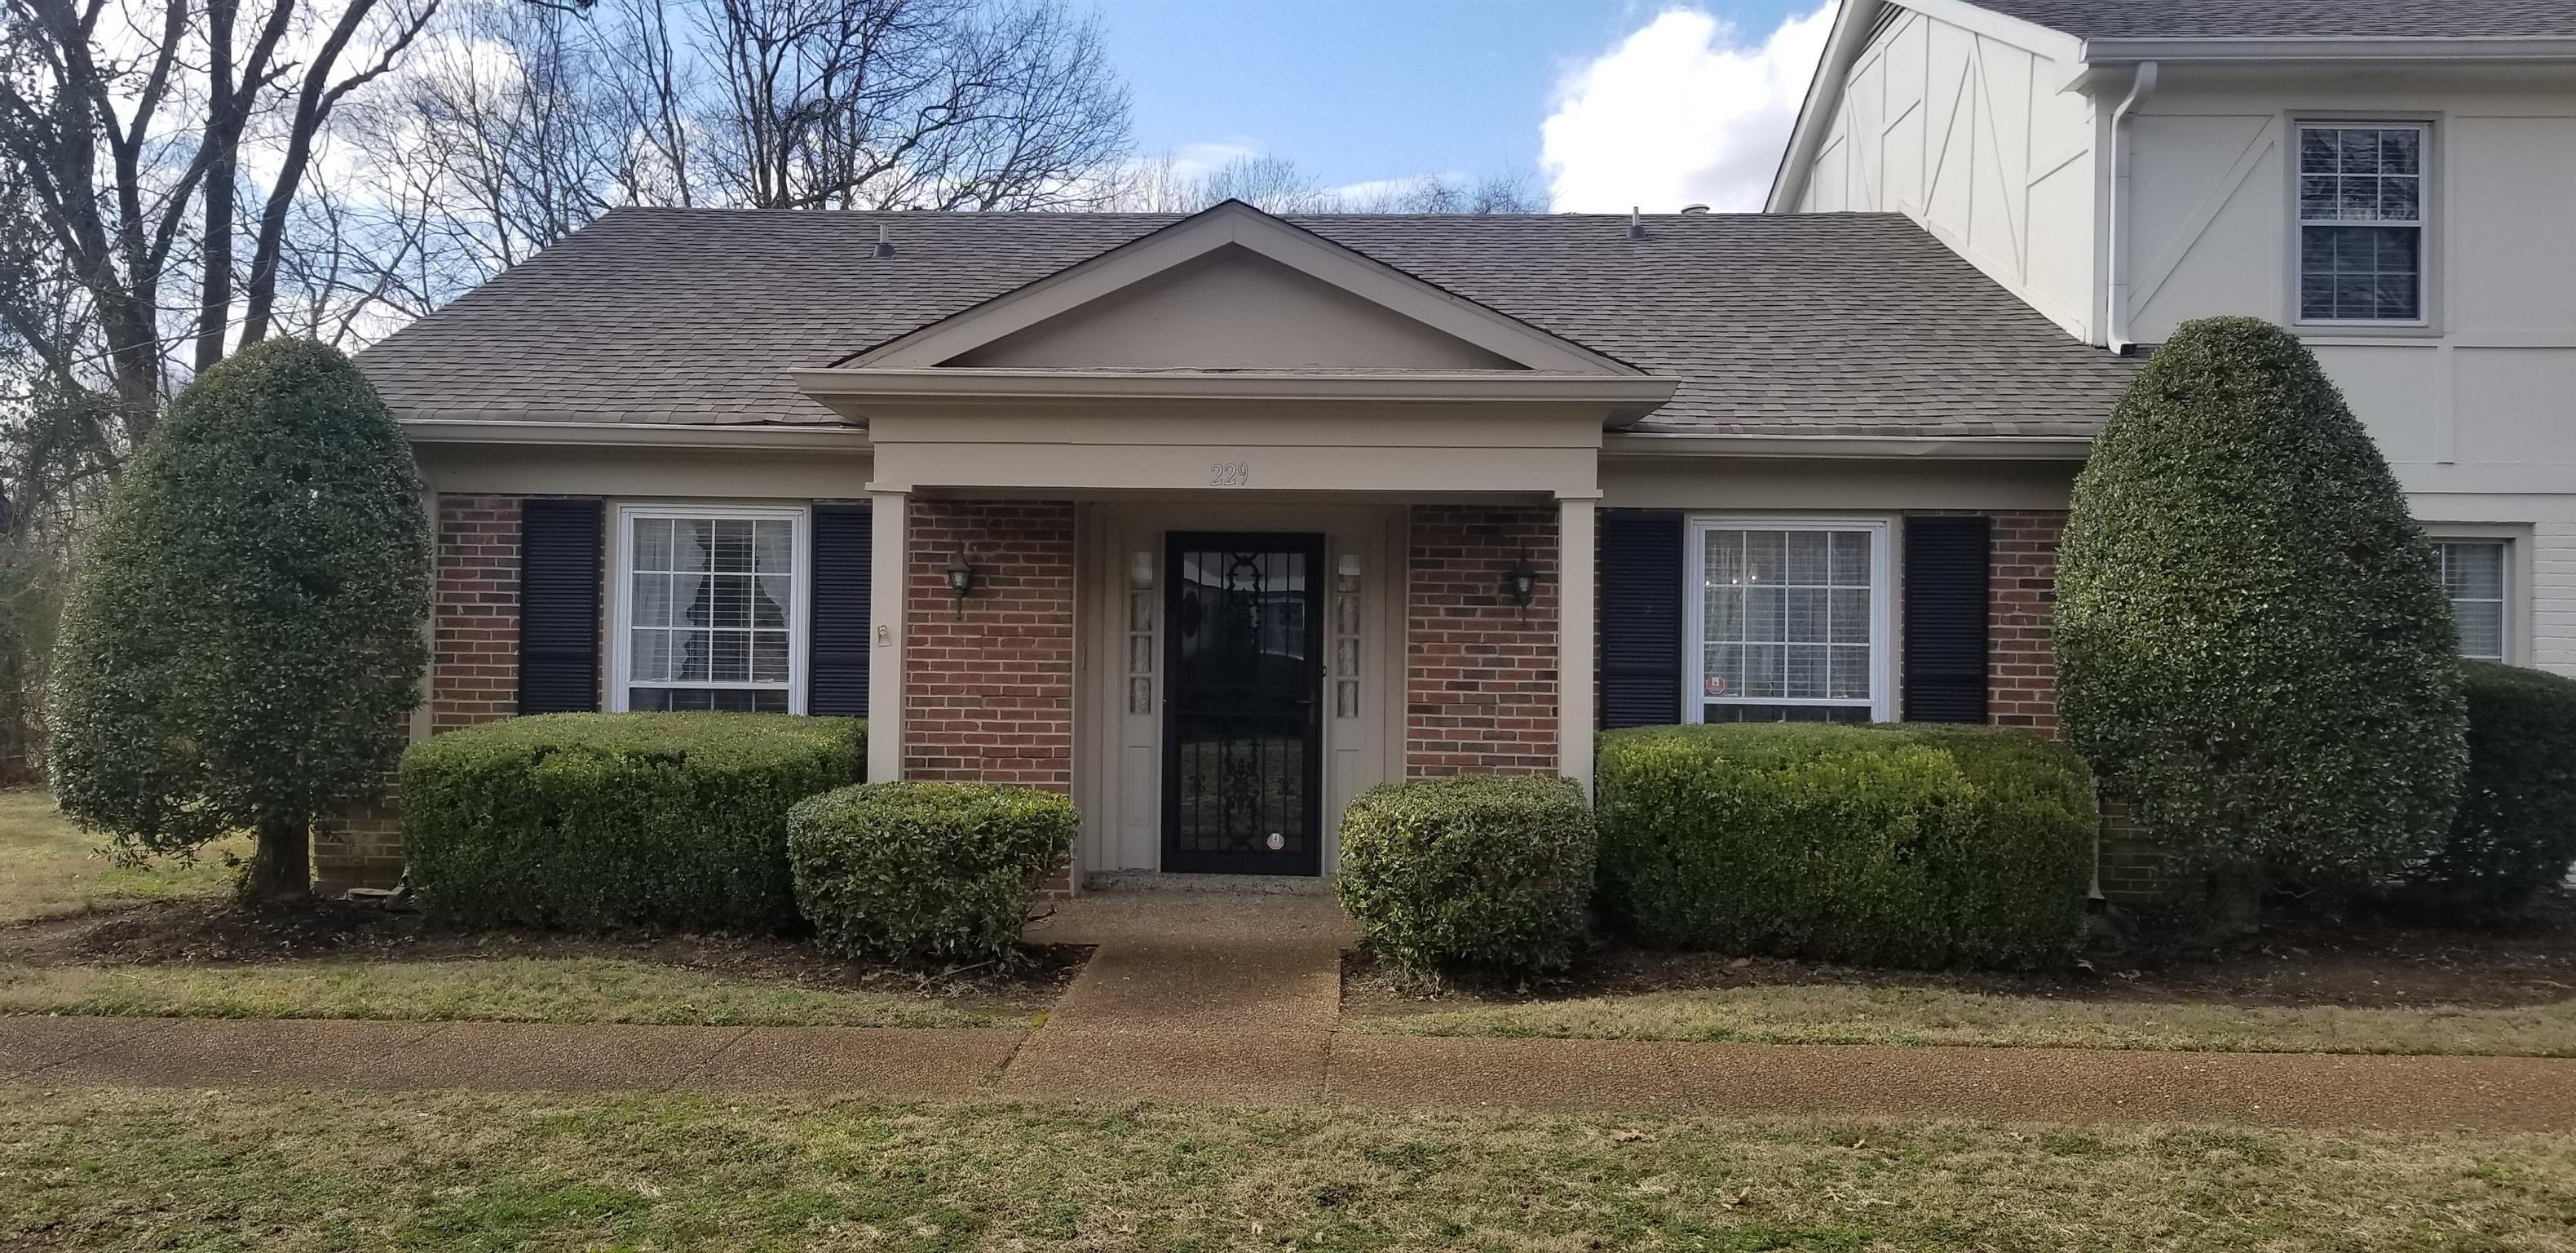 229 Plantation Ct, Bellevue in Davidson County County, TN 37221 Home for Sale